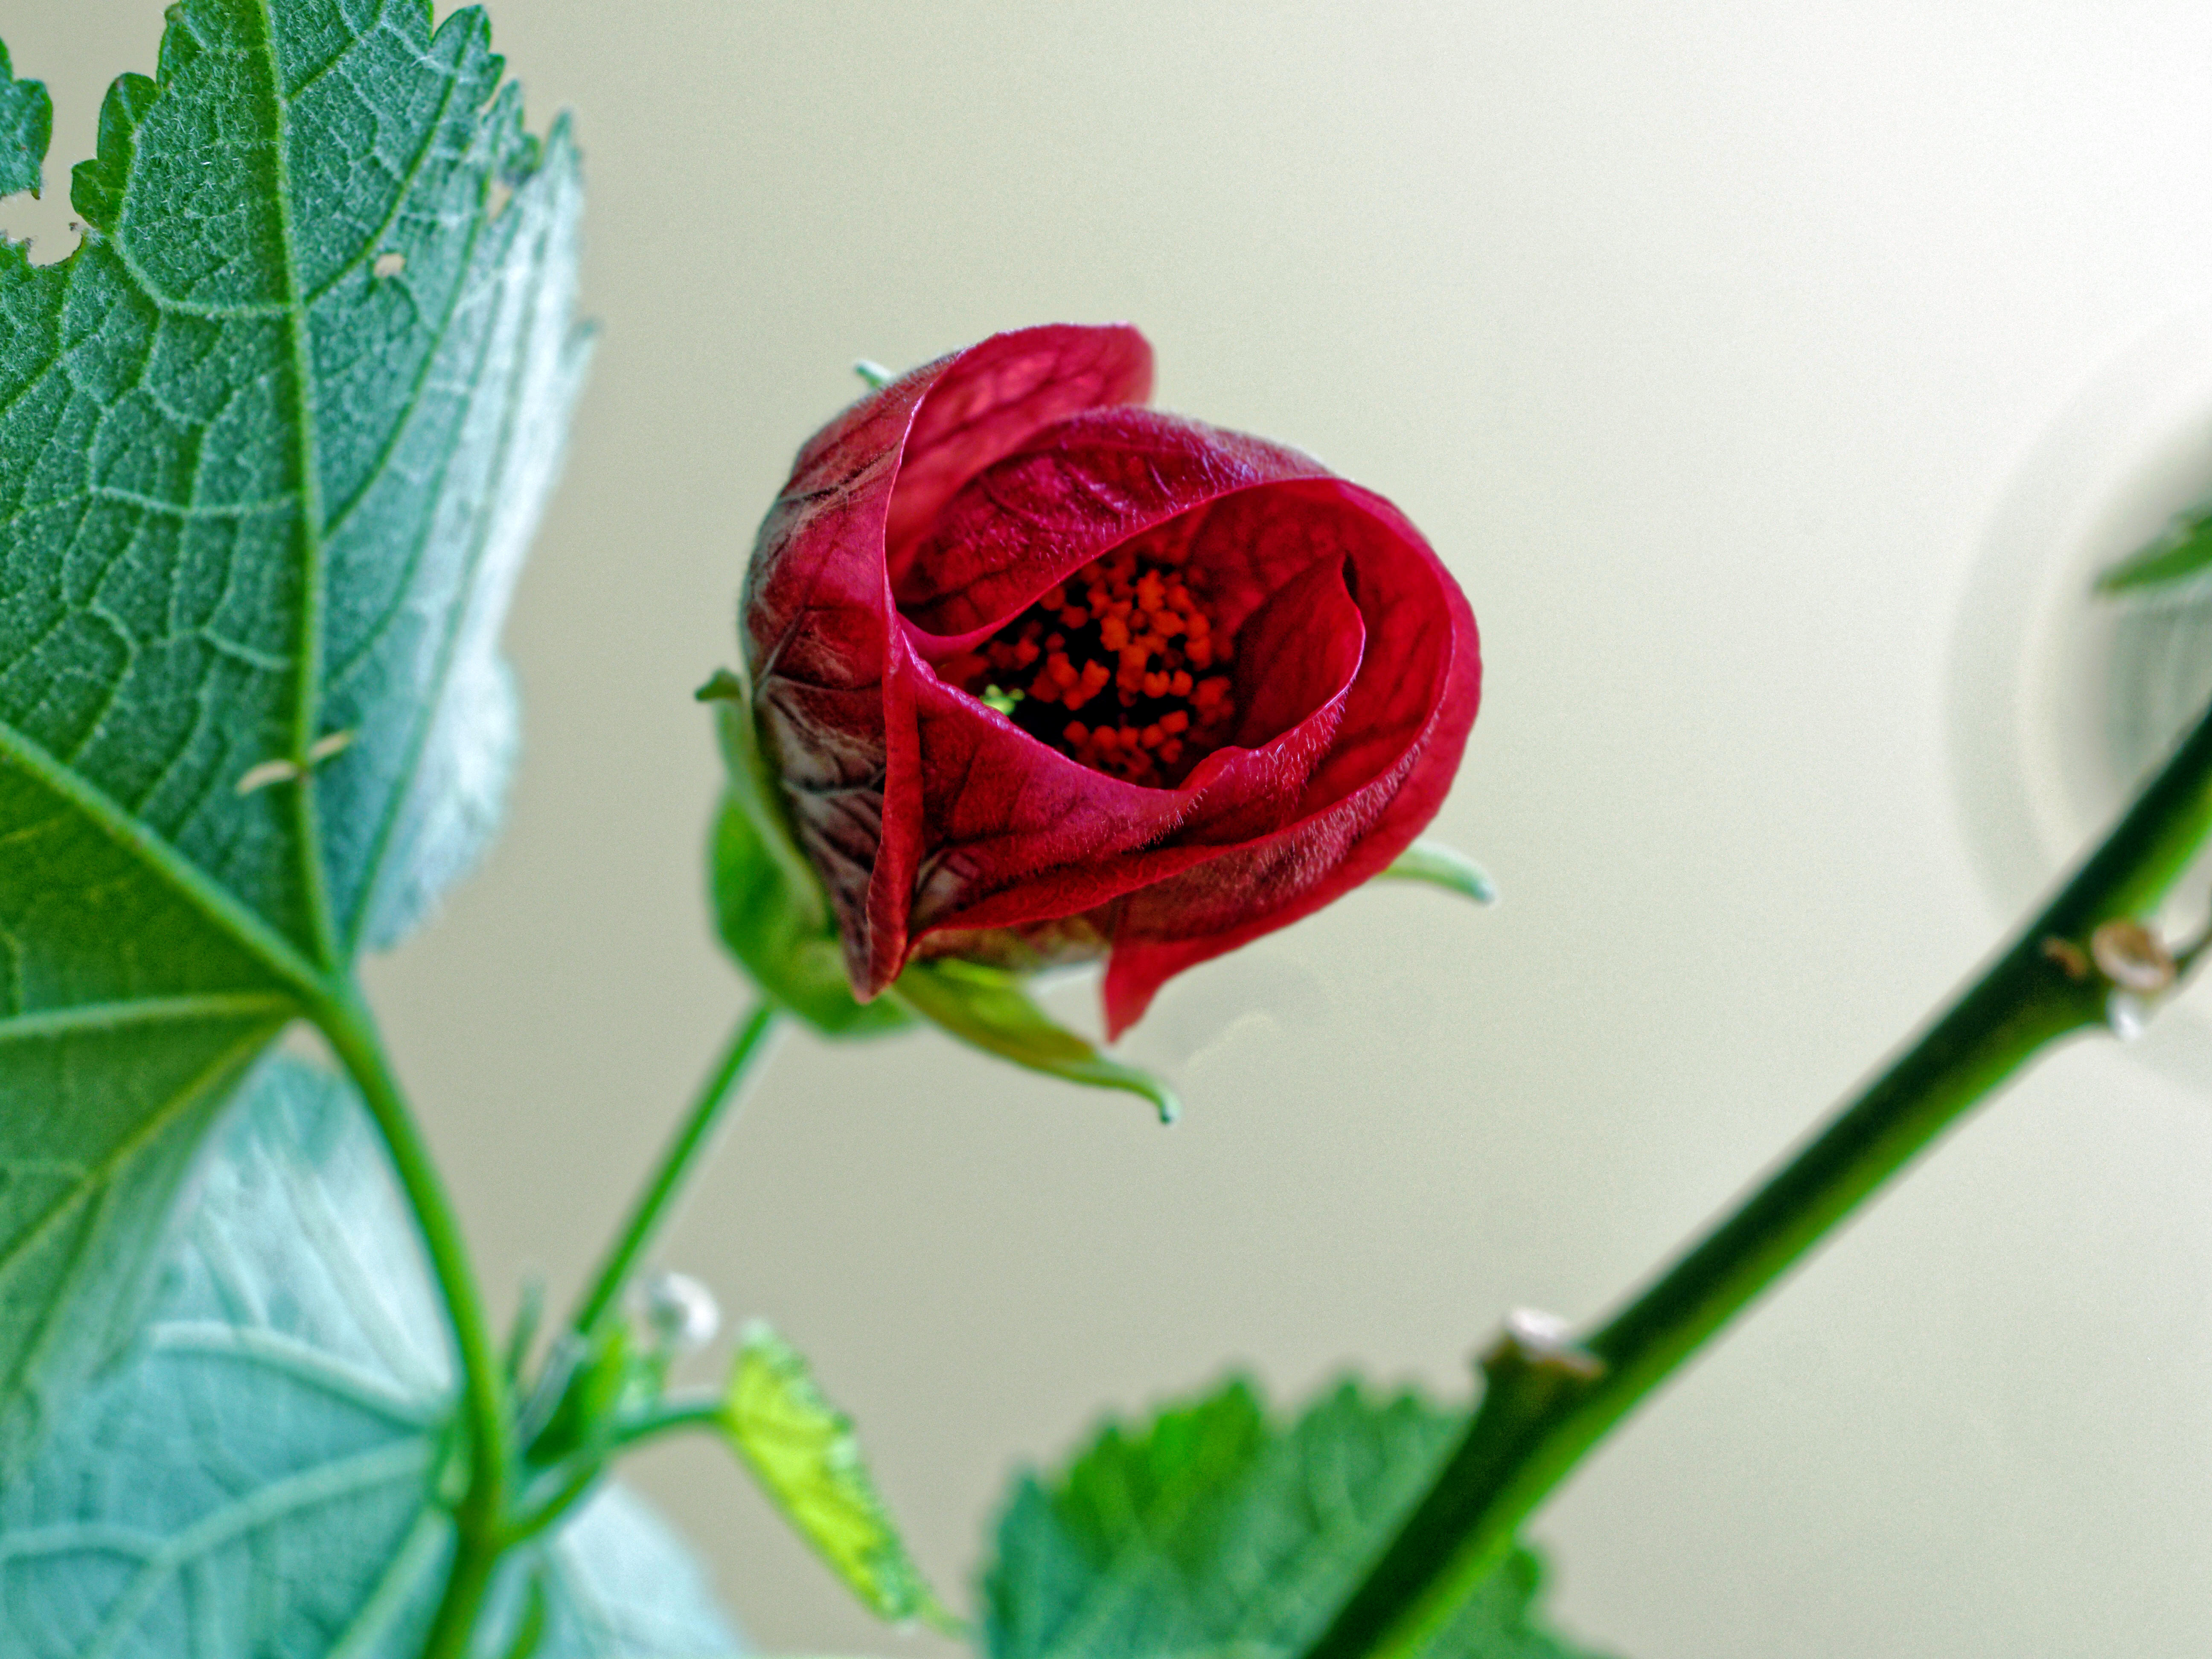 This should be Abutilon-4.jpeg.  Is it missing?